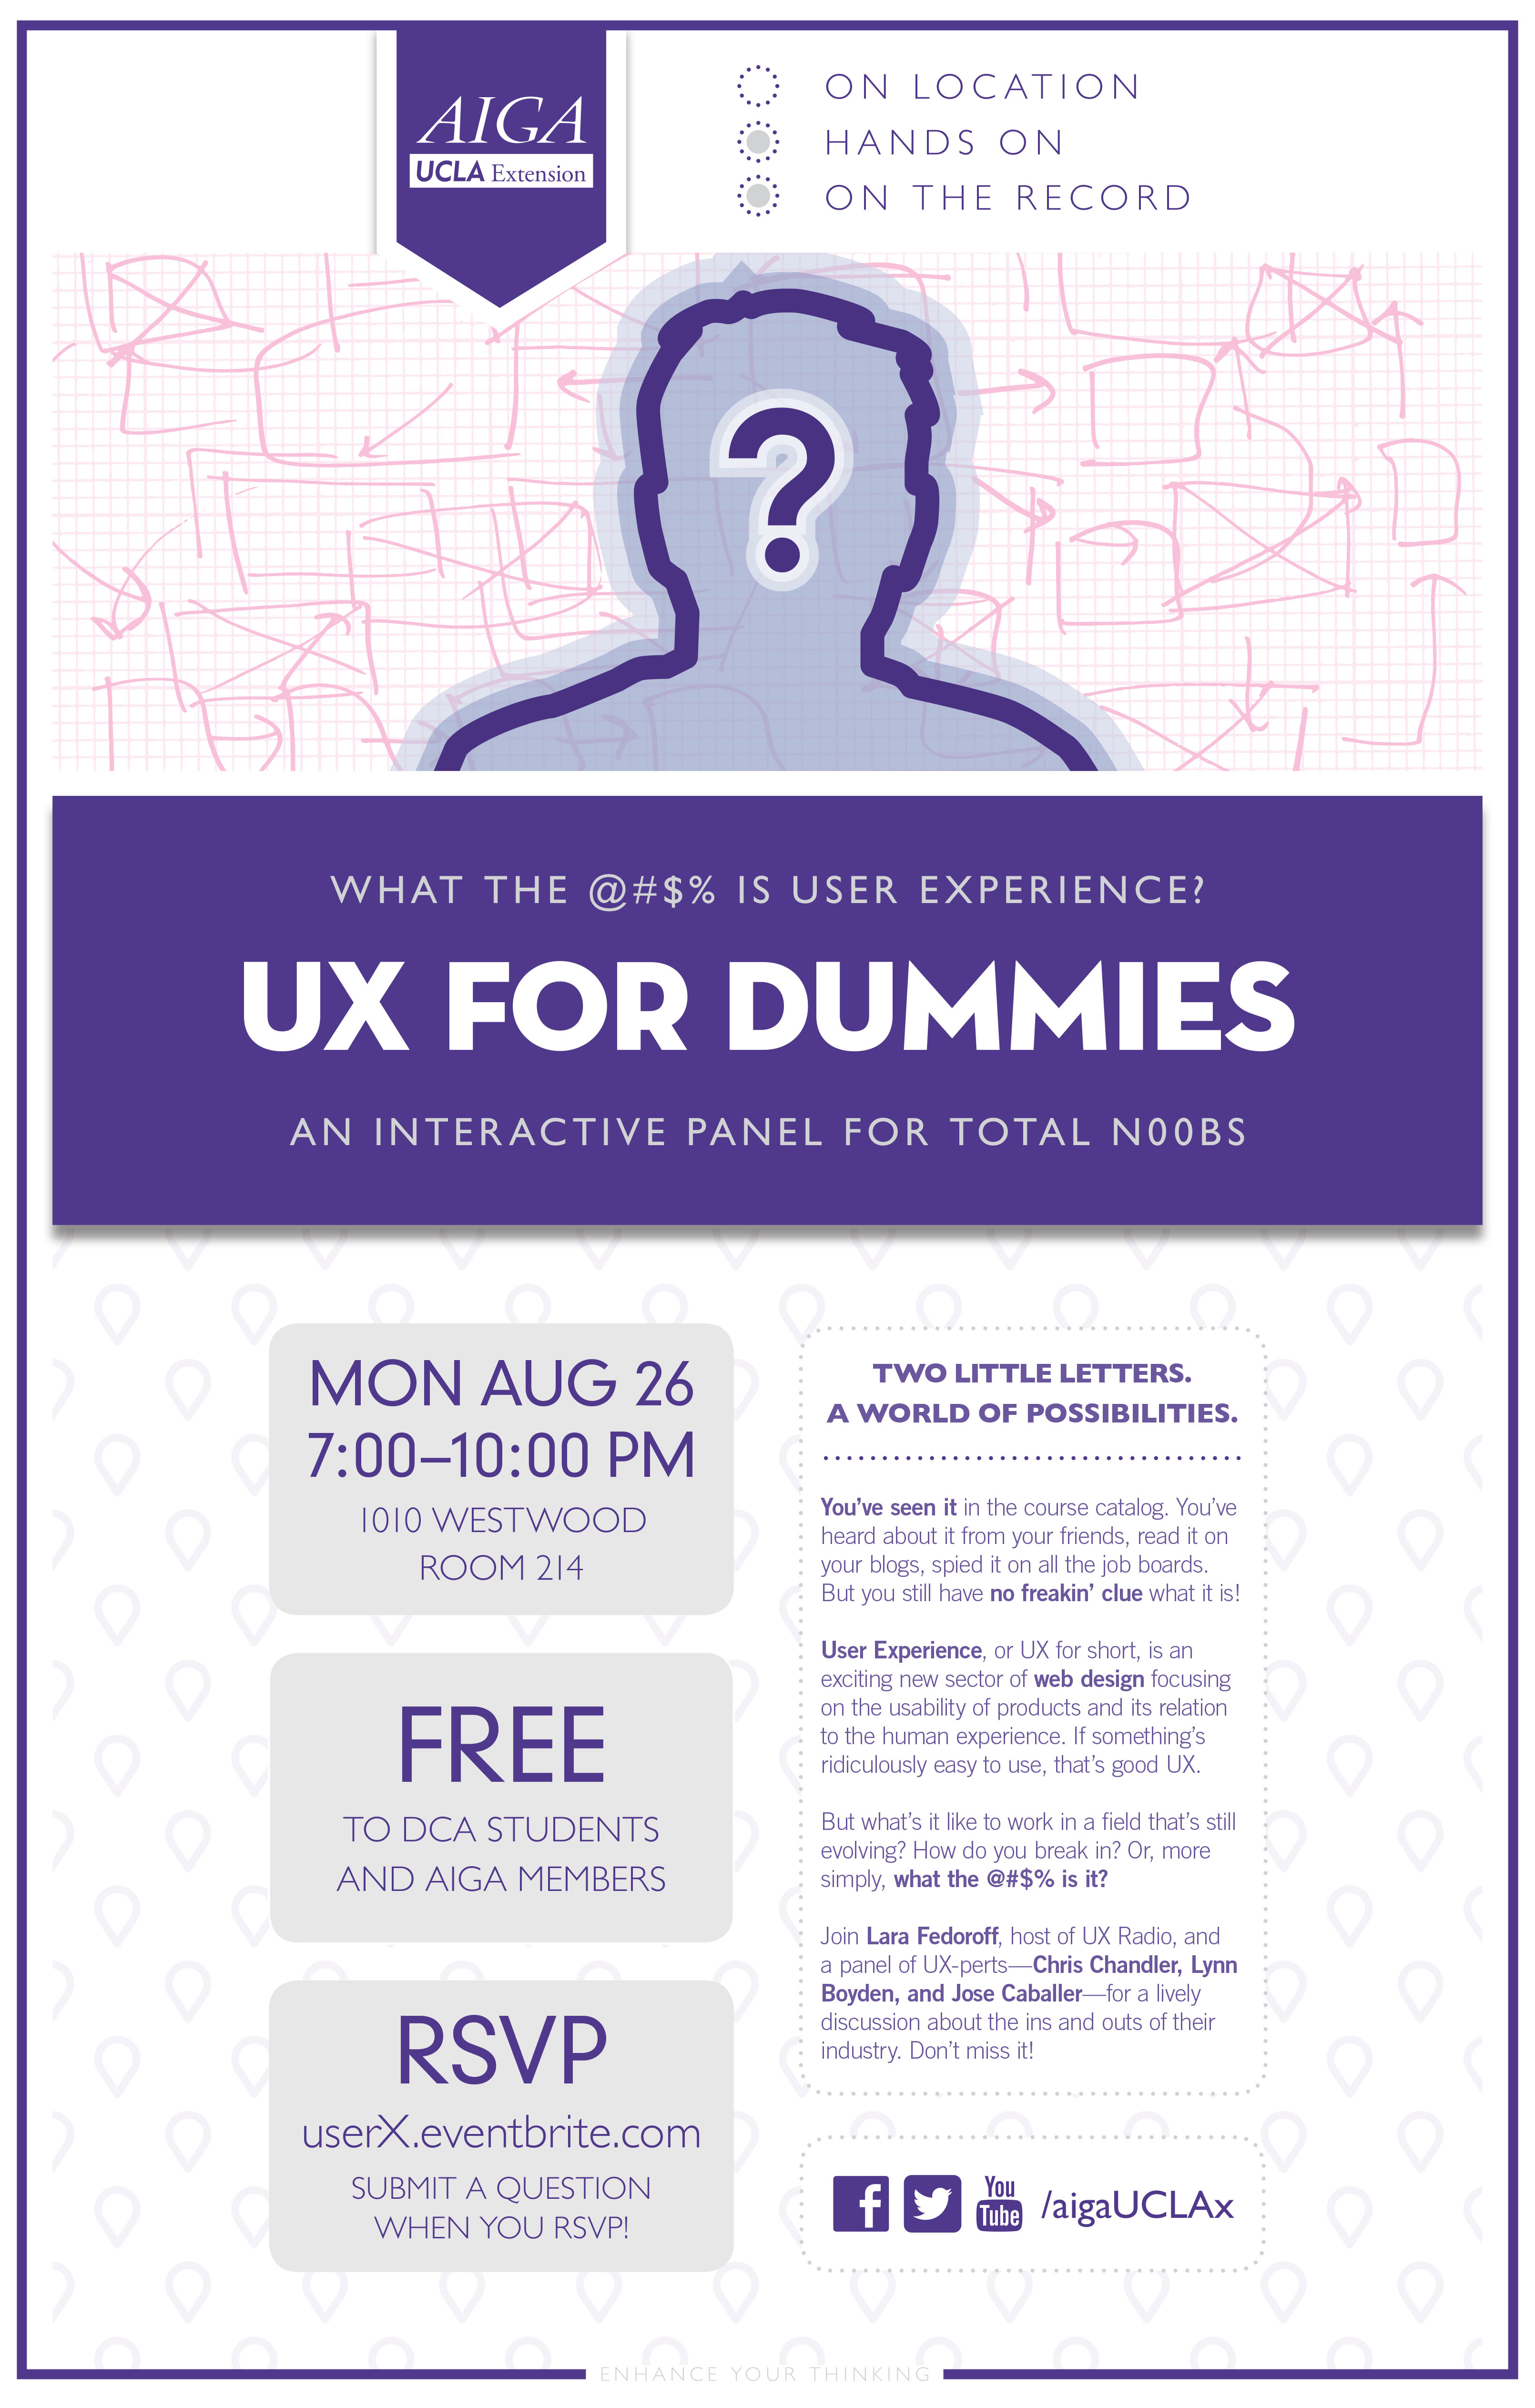 AIGA UCLAx UX Poster 080613